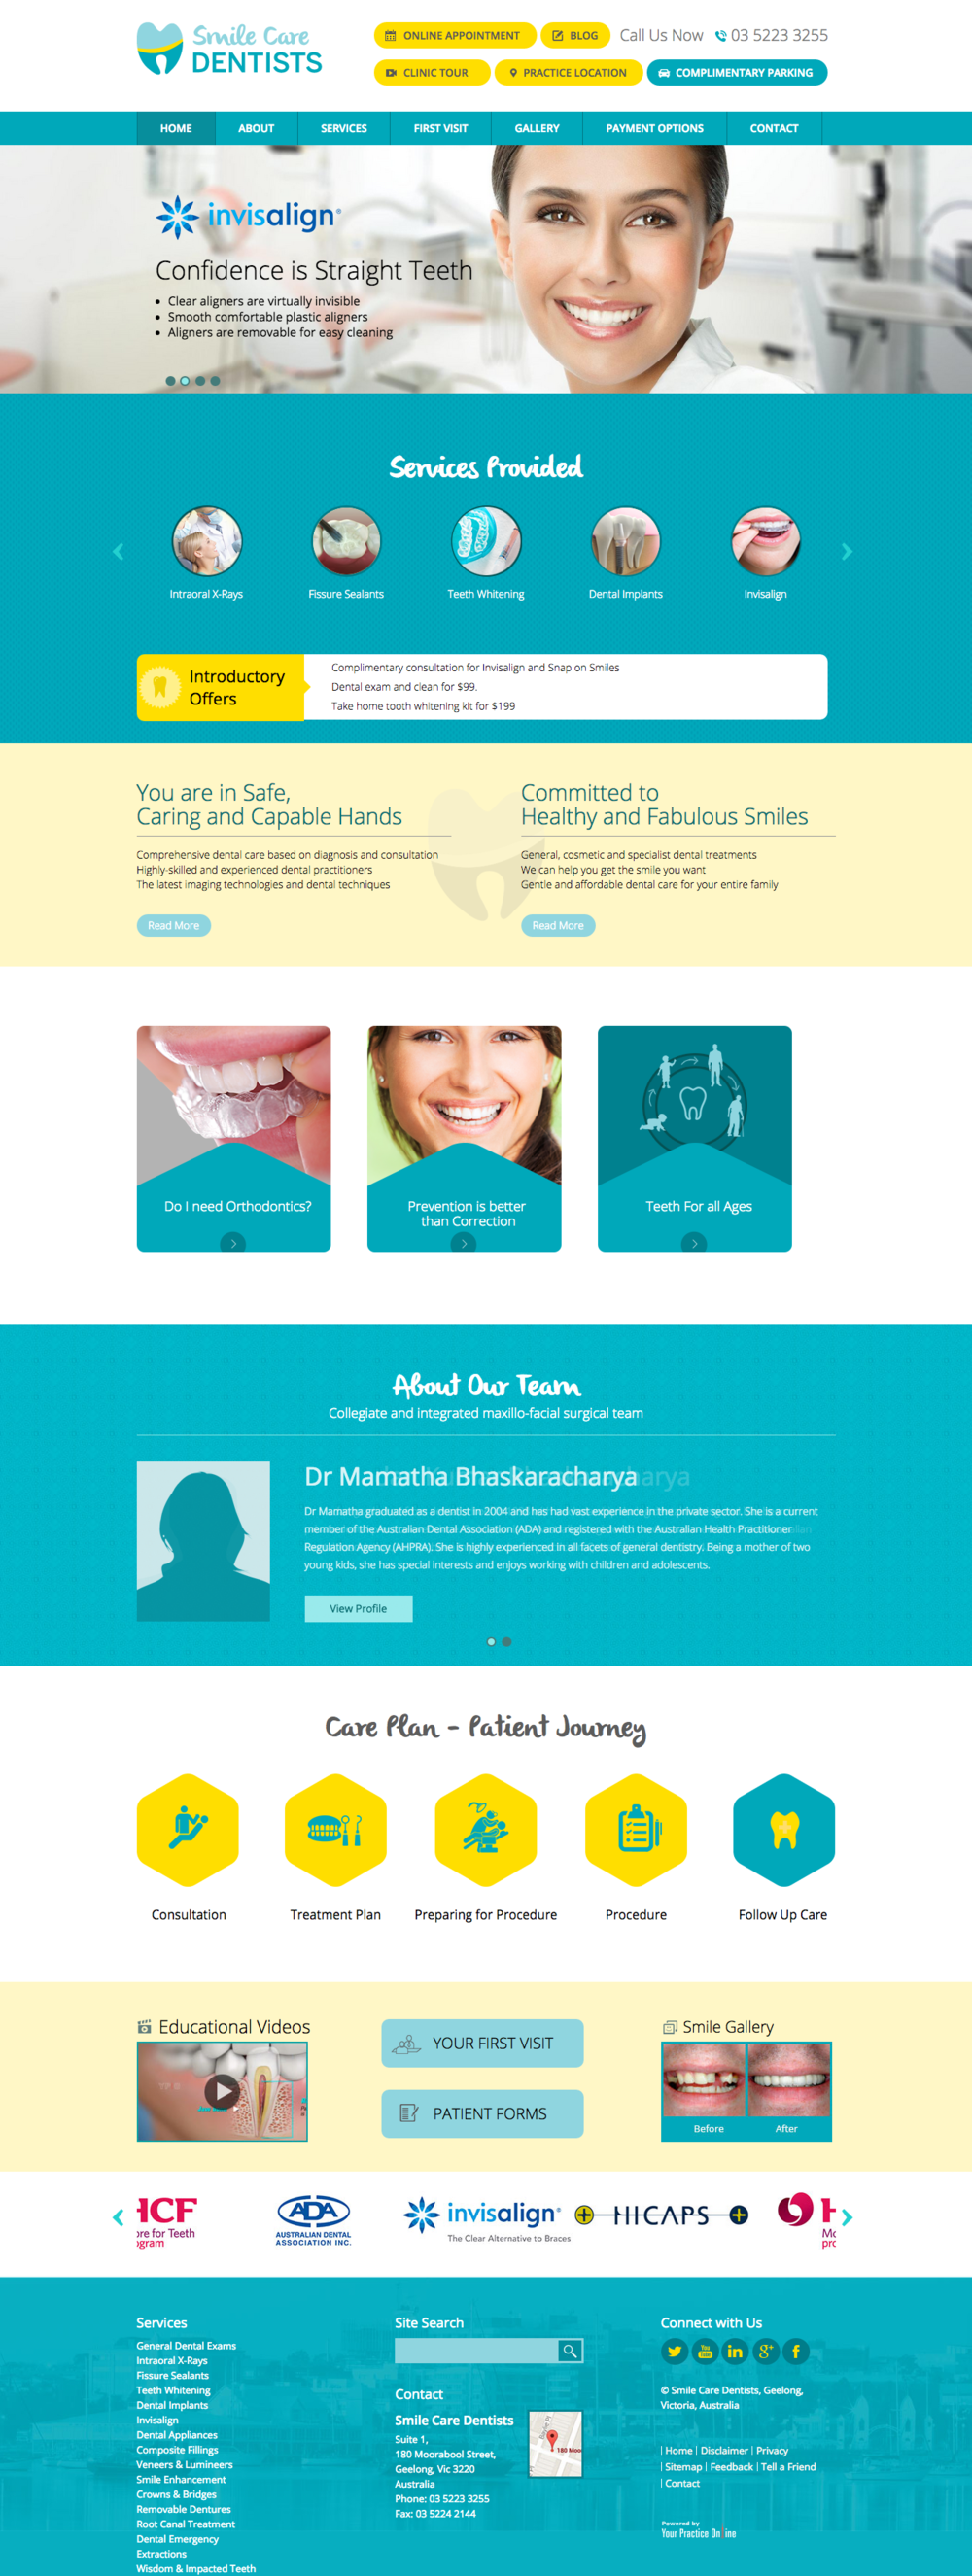 Smile Care Dentists  Geelong  Victoria  Australia.png